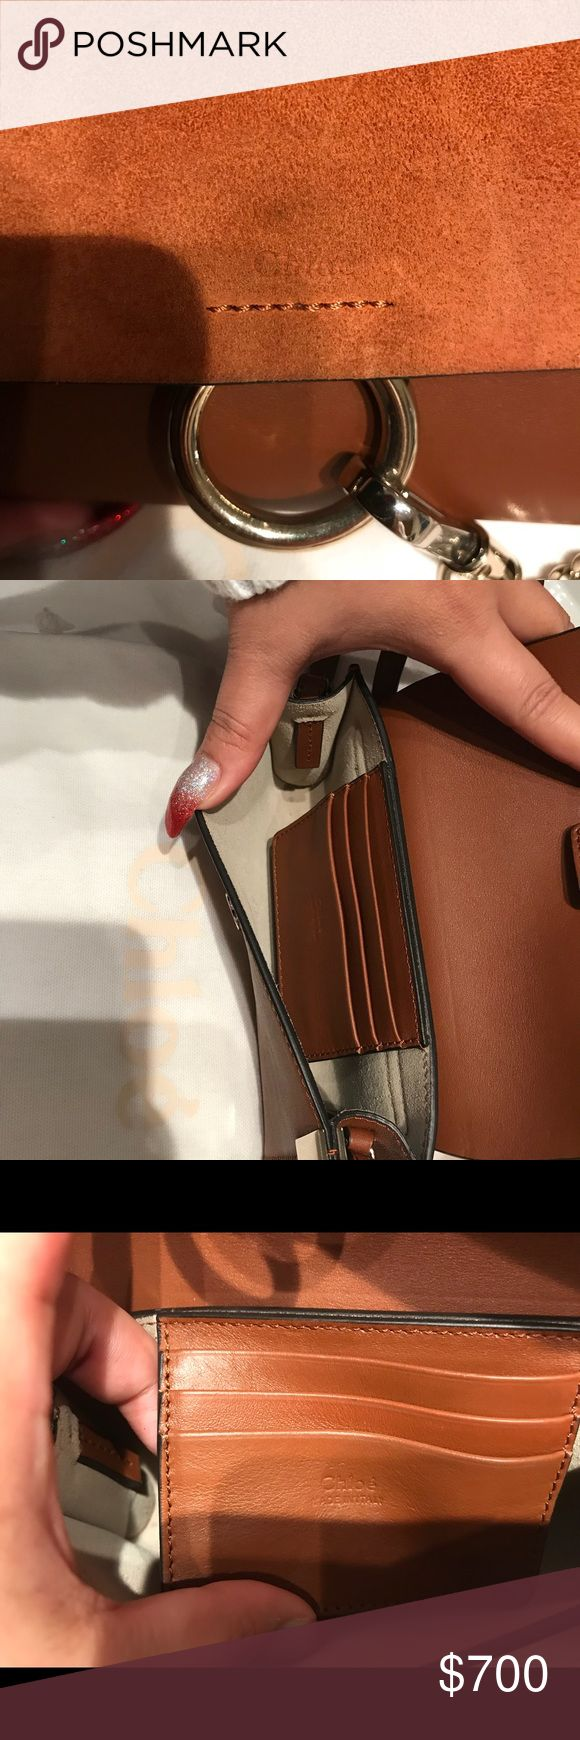 """Chloé Faye Mini Bag Almost new !!!! Never been used!!!  There's where the logo is dark area but i have no idea what is it. For sure you can clean it. I can't return it is more then 90 days that's why i'm selling it. But never been used. I have the dust bag with it. Bought it from Nordstrom. Original price is 795.- plus tax so like 850.    - Lined with beige suede. Three card slots at interior. -Magnetic snap closure - Made in italy - 4.0 """"heightx7.0""""width x 1.5 """" depth (approximately) - 22…"""